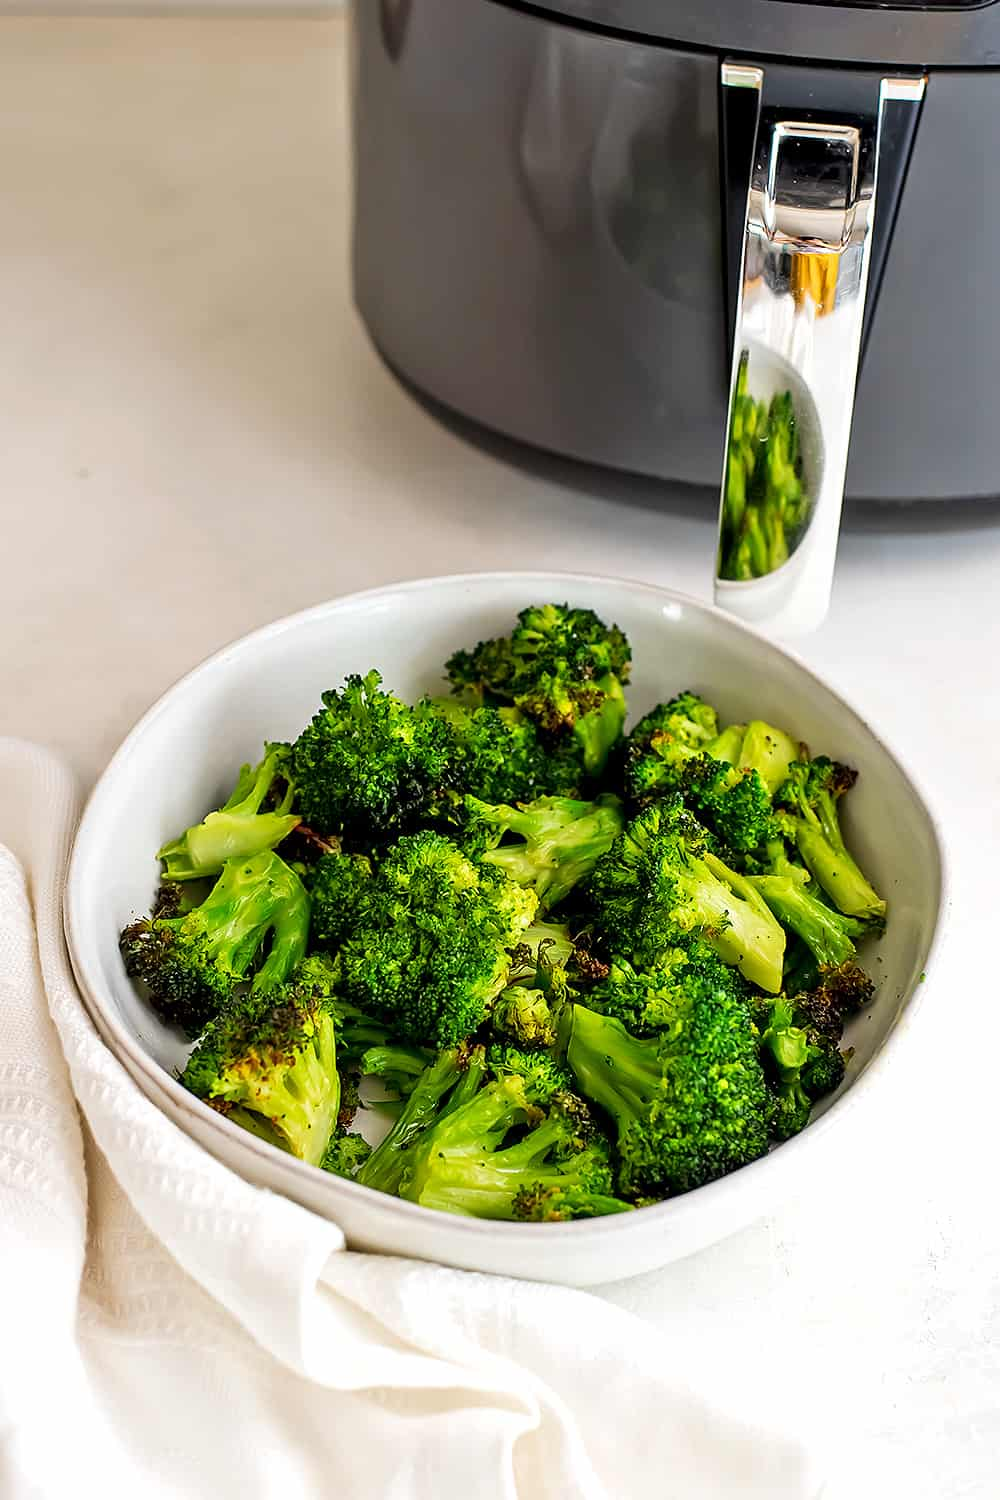 Broccoli in a white bowl in front of the air fryer.